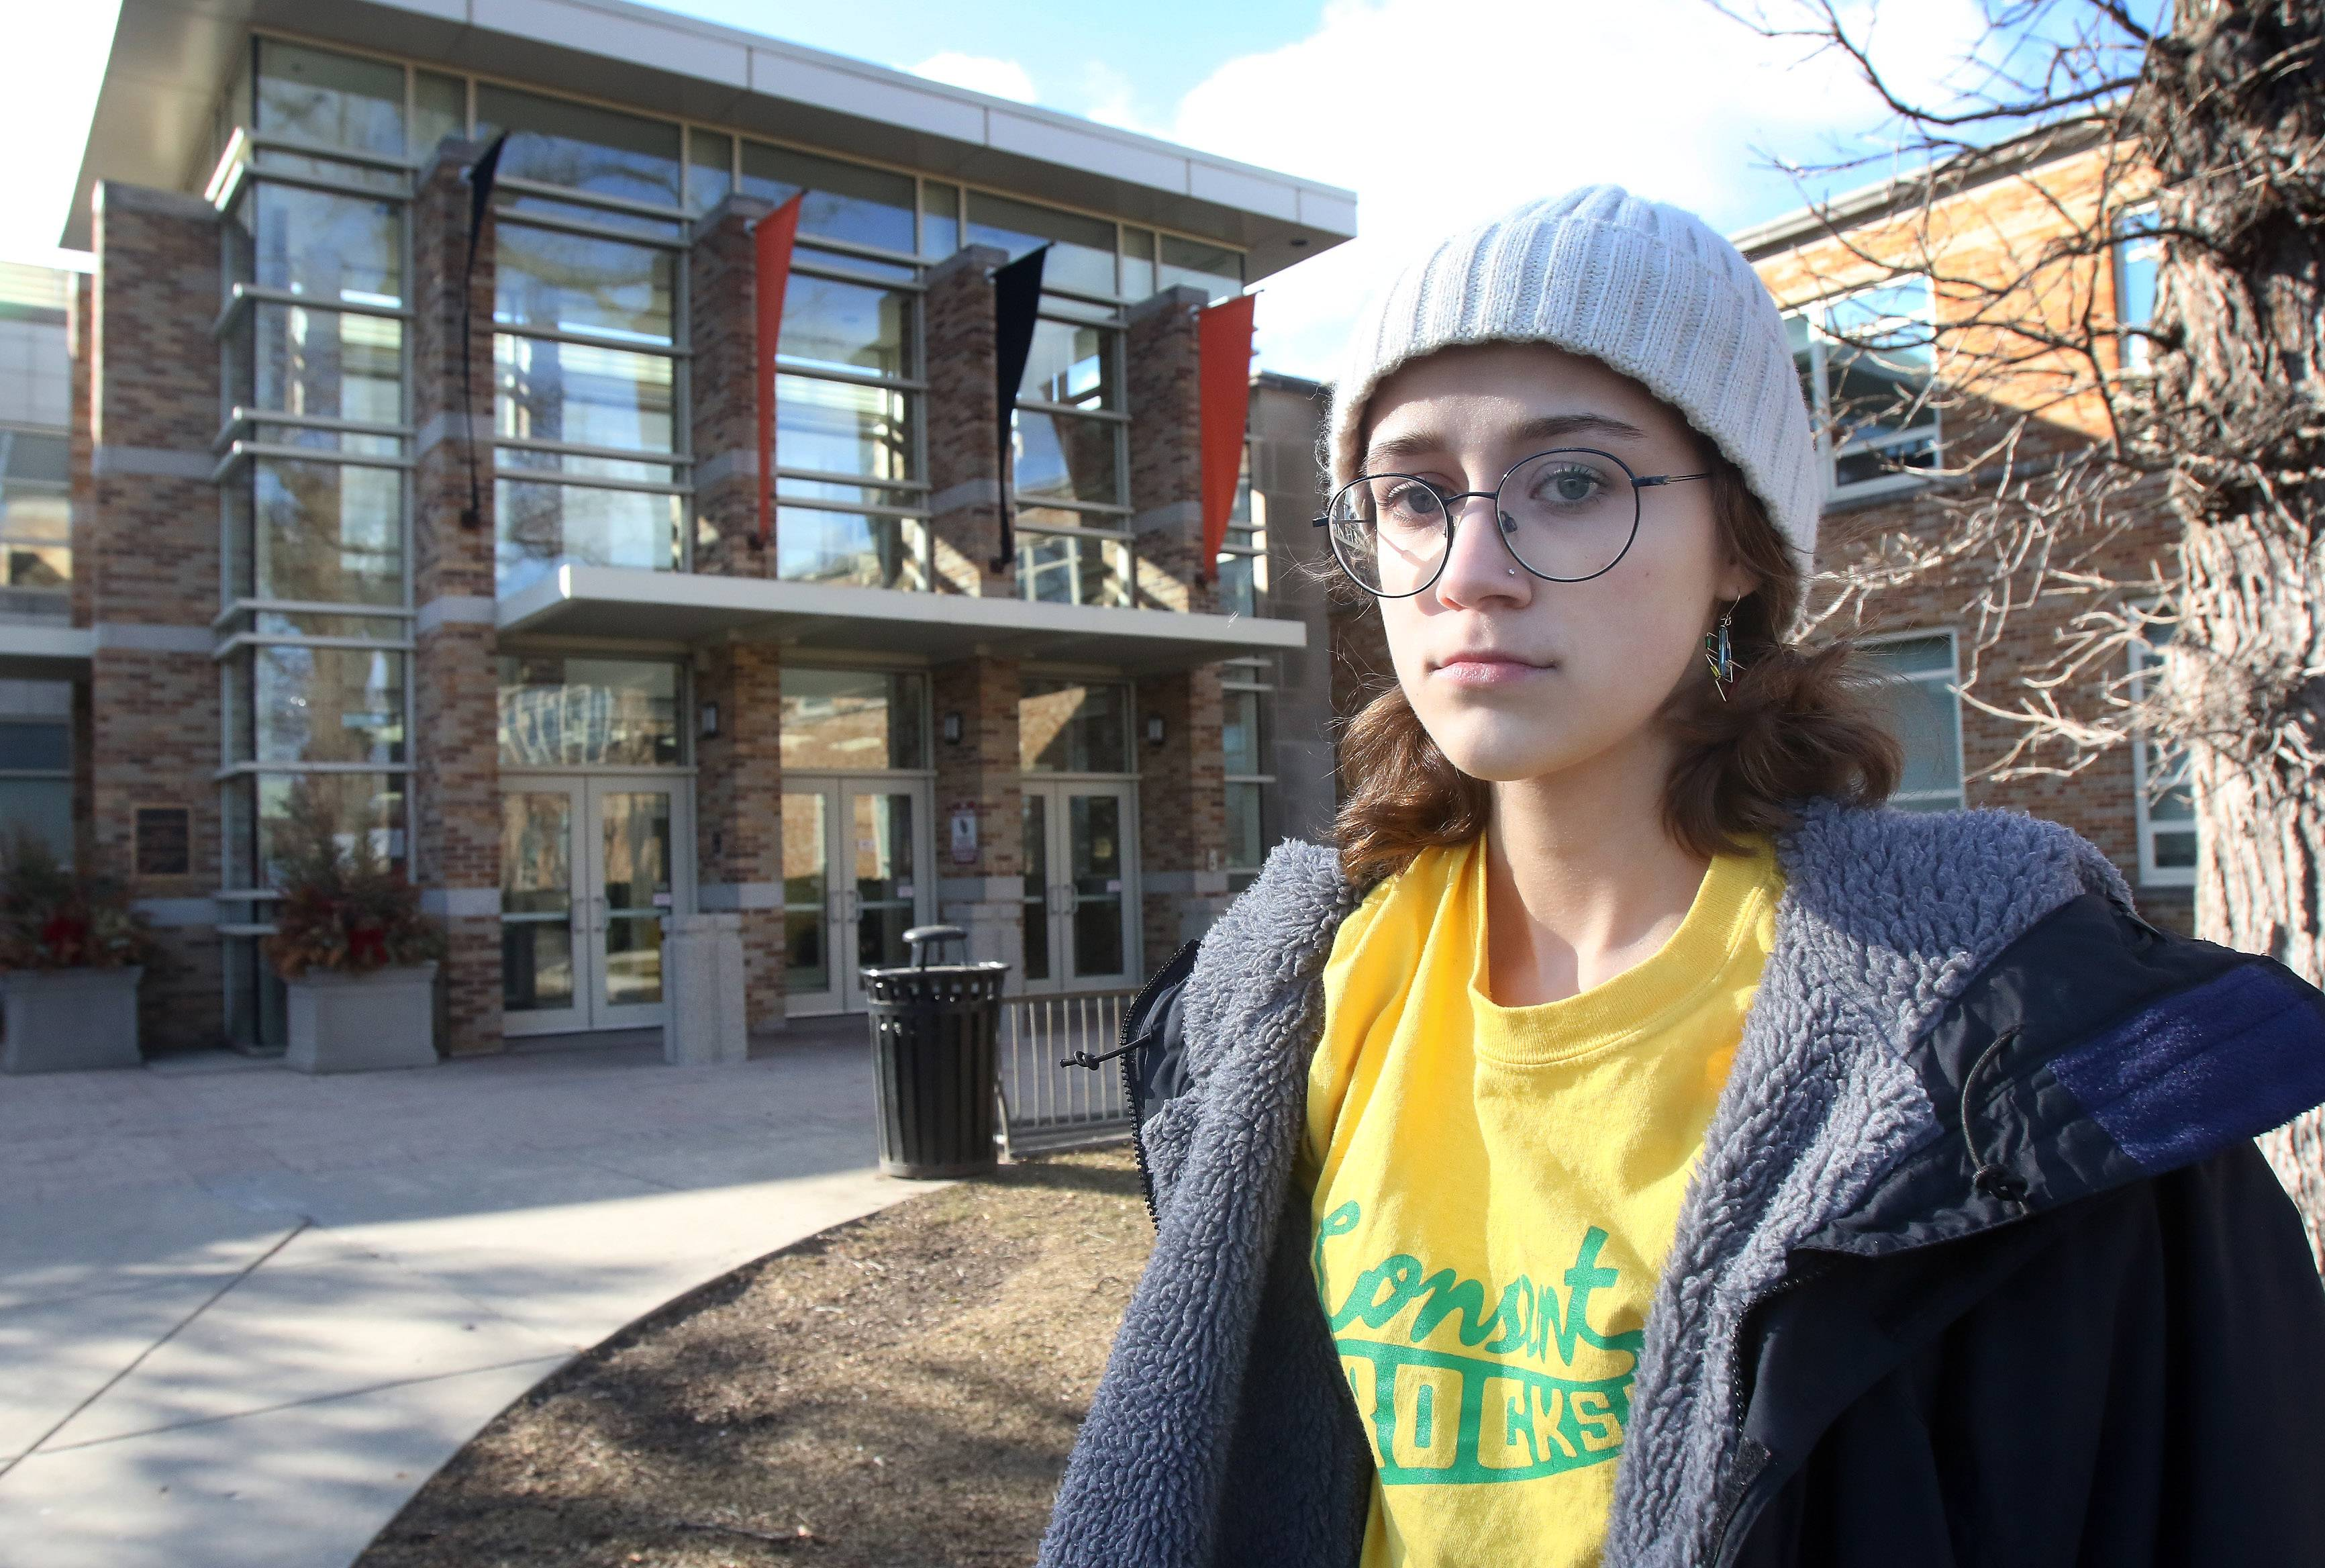 Libertyville High School senior Mary Lothspeich is part of a group of students organizing a walkout to protest gun violence on school campuses. Students across the country are set to walk out March 14 -- one month after 17 people were killed at a school in Parkland, Florida.